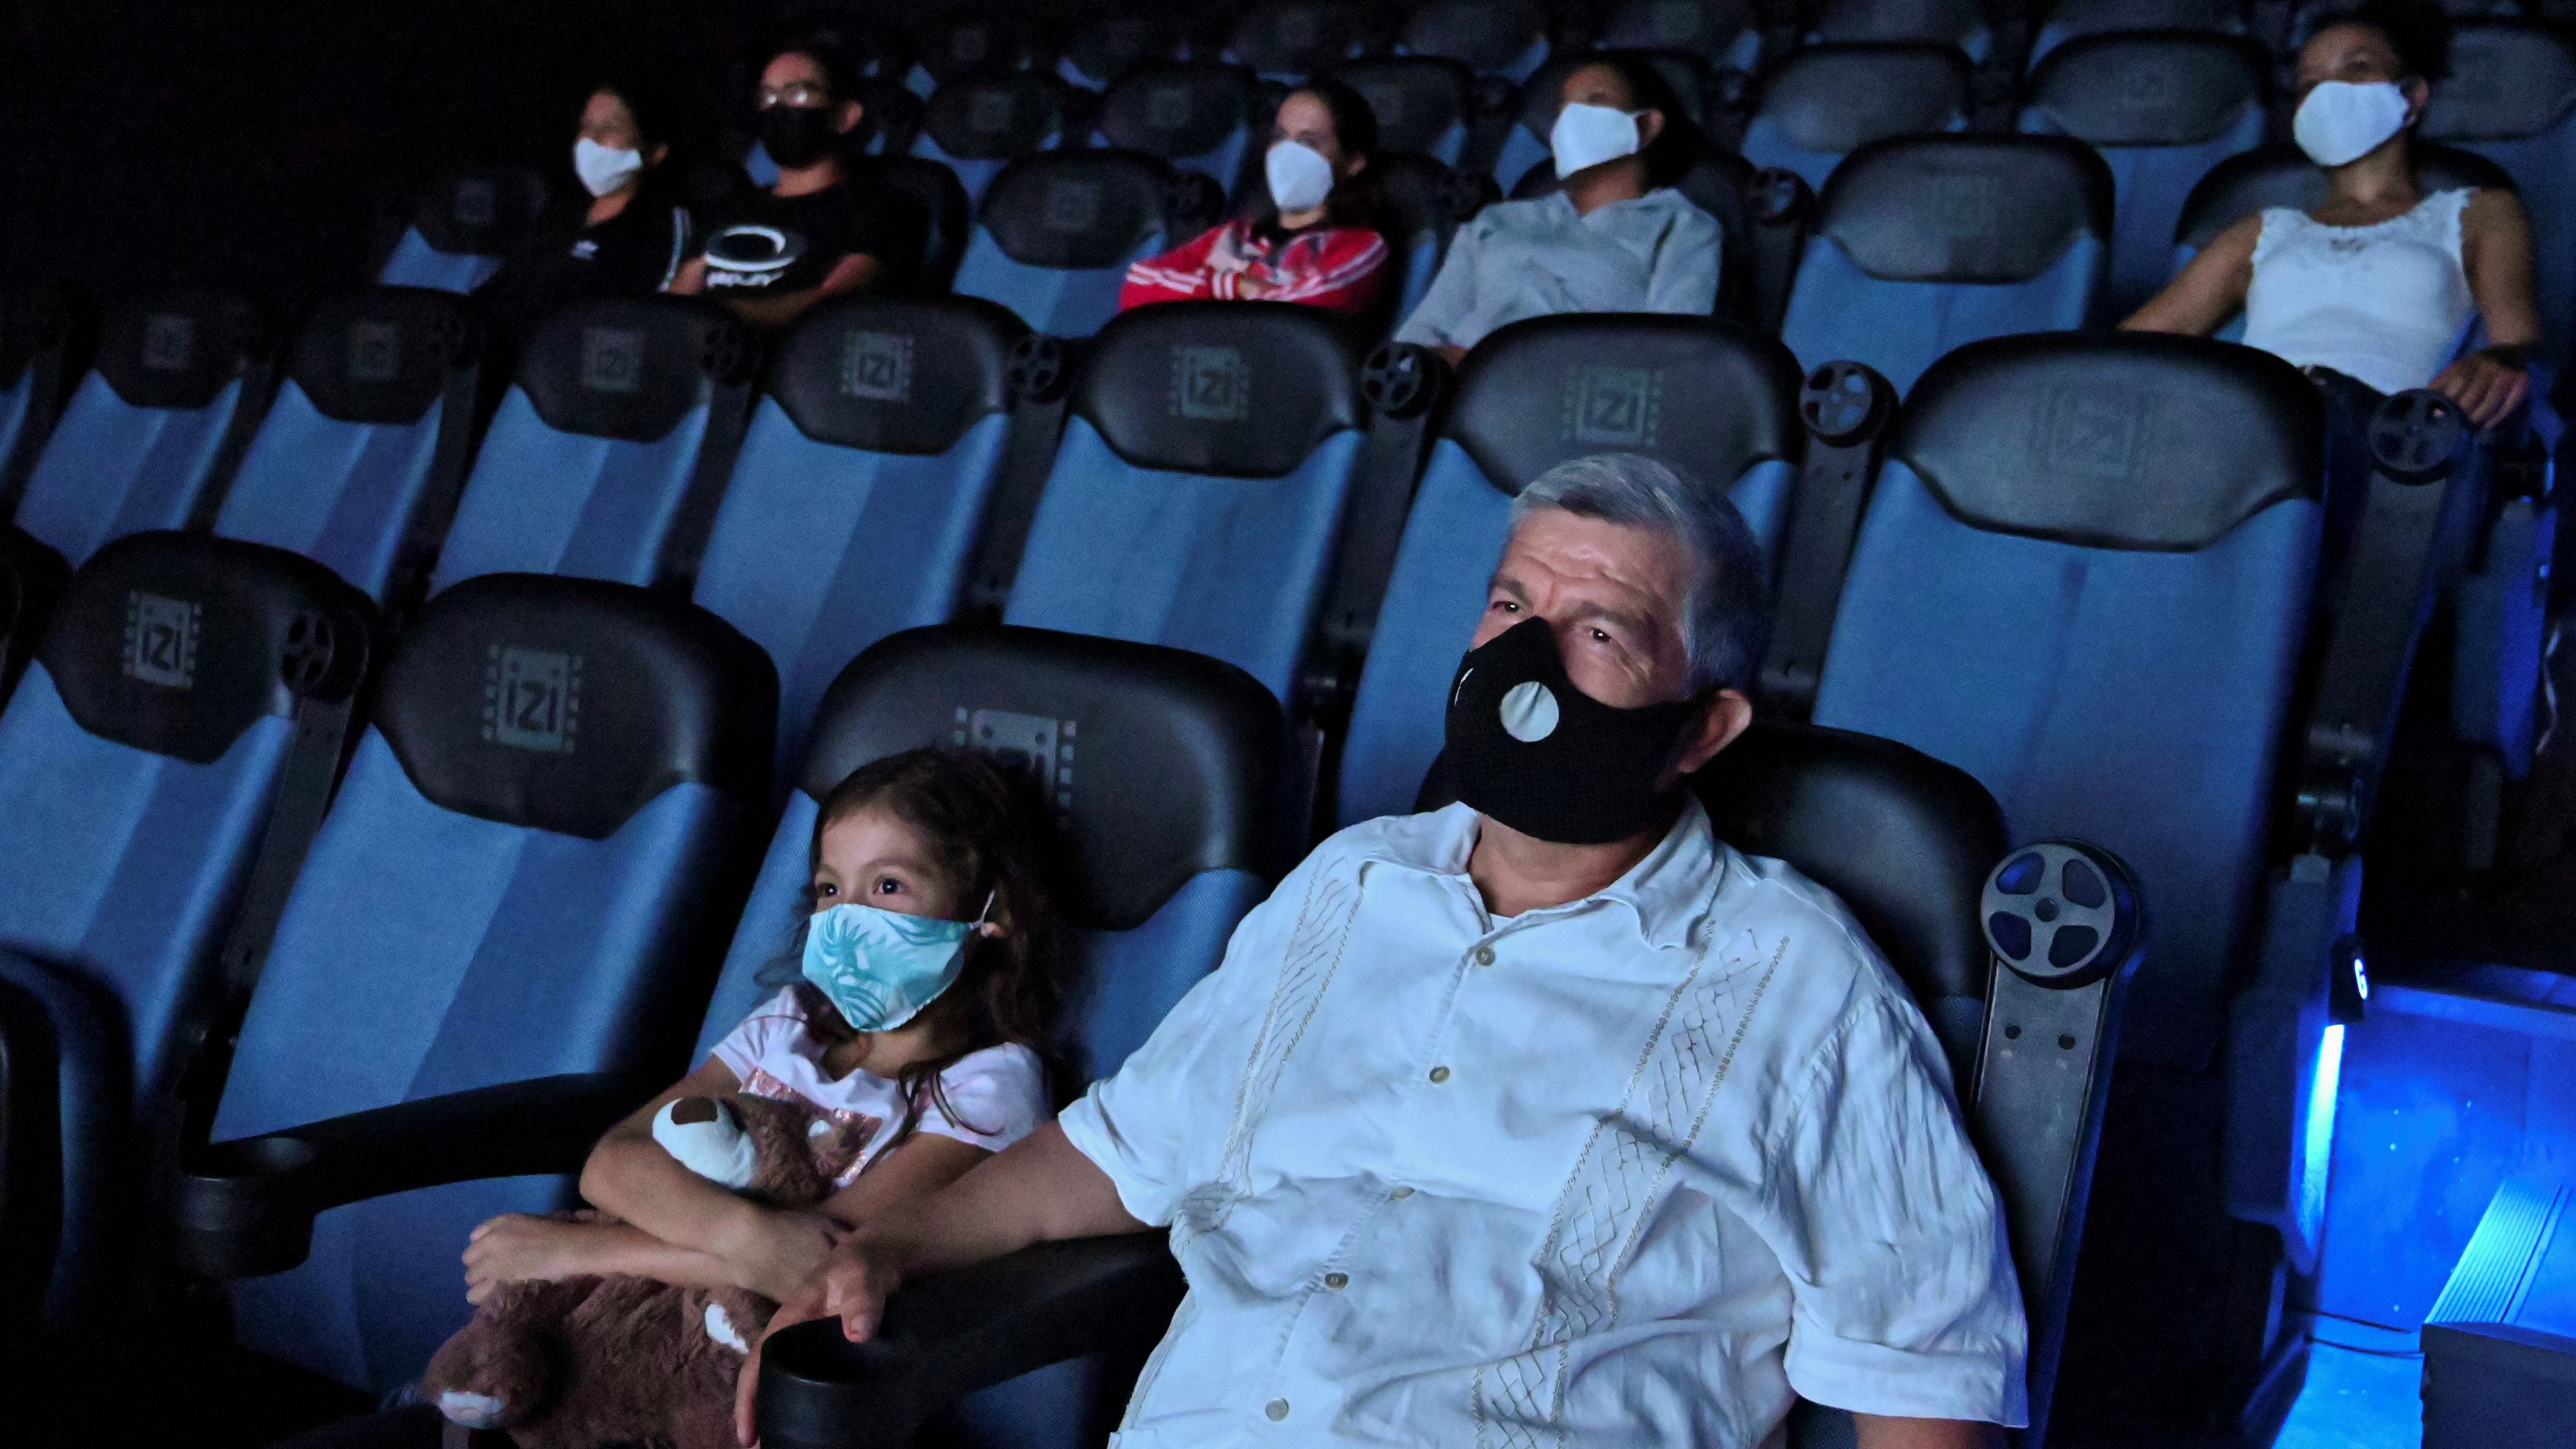 National Association of Theatre Owners President and CEO John Fithian gives his thoughts on the future of the movie theater industry in wake of the coronavirus outbreak.